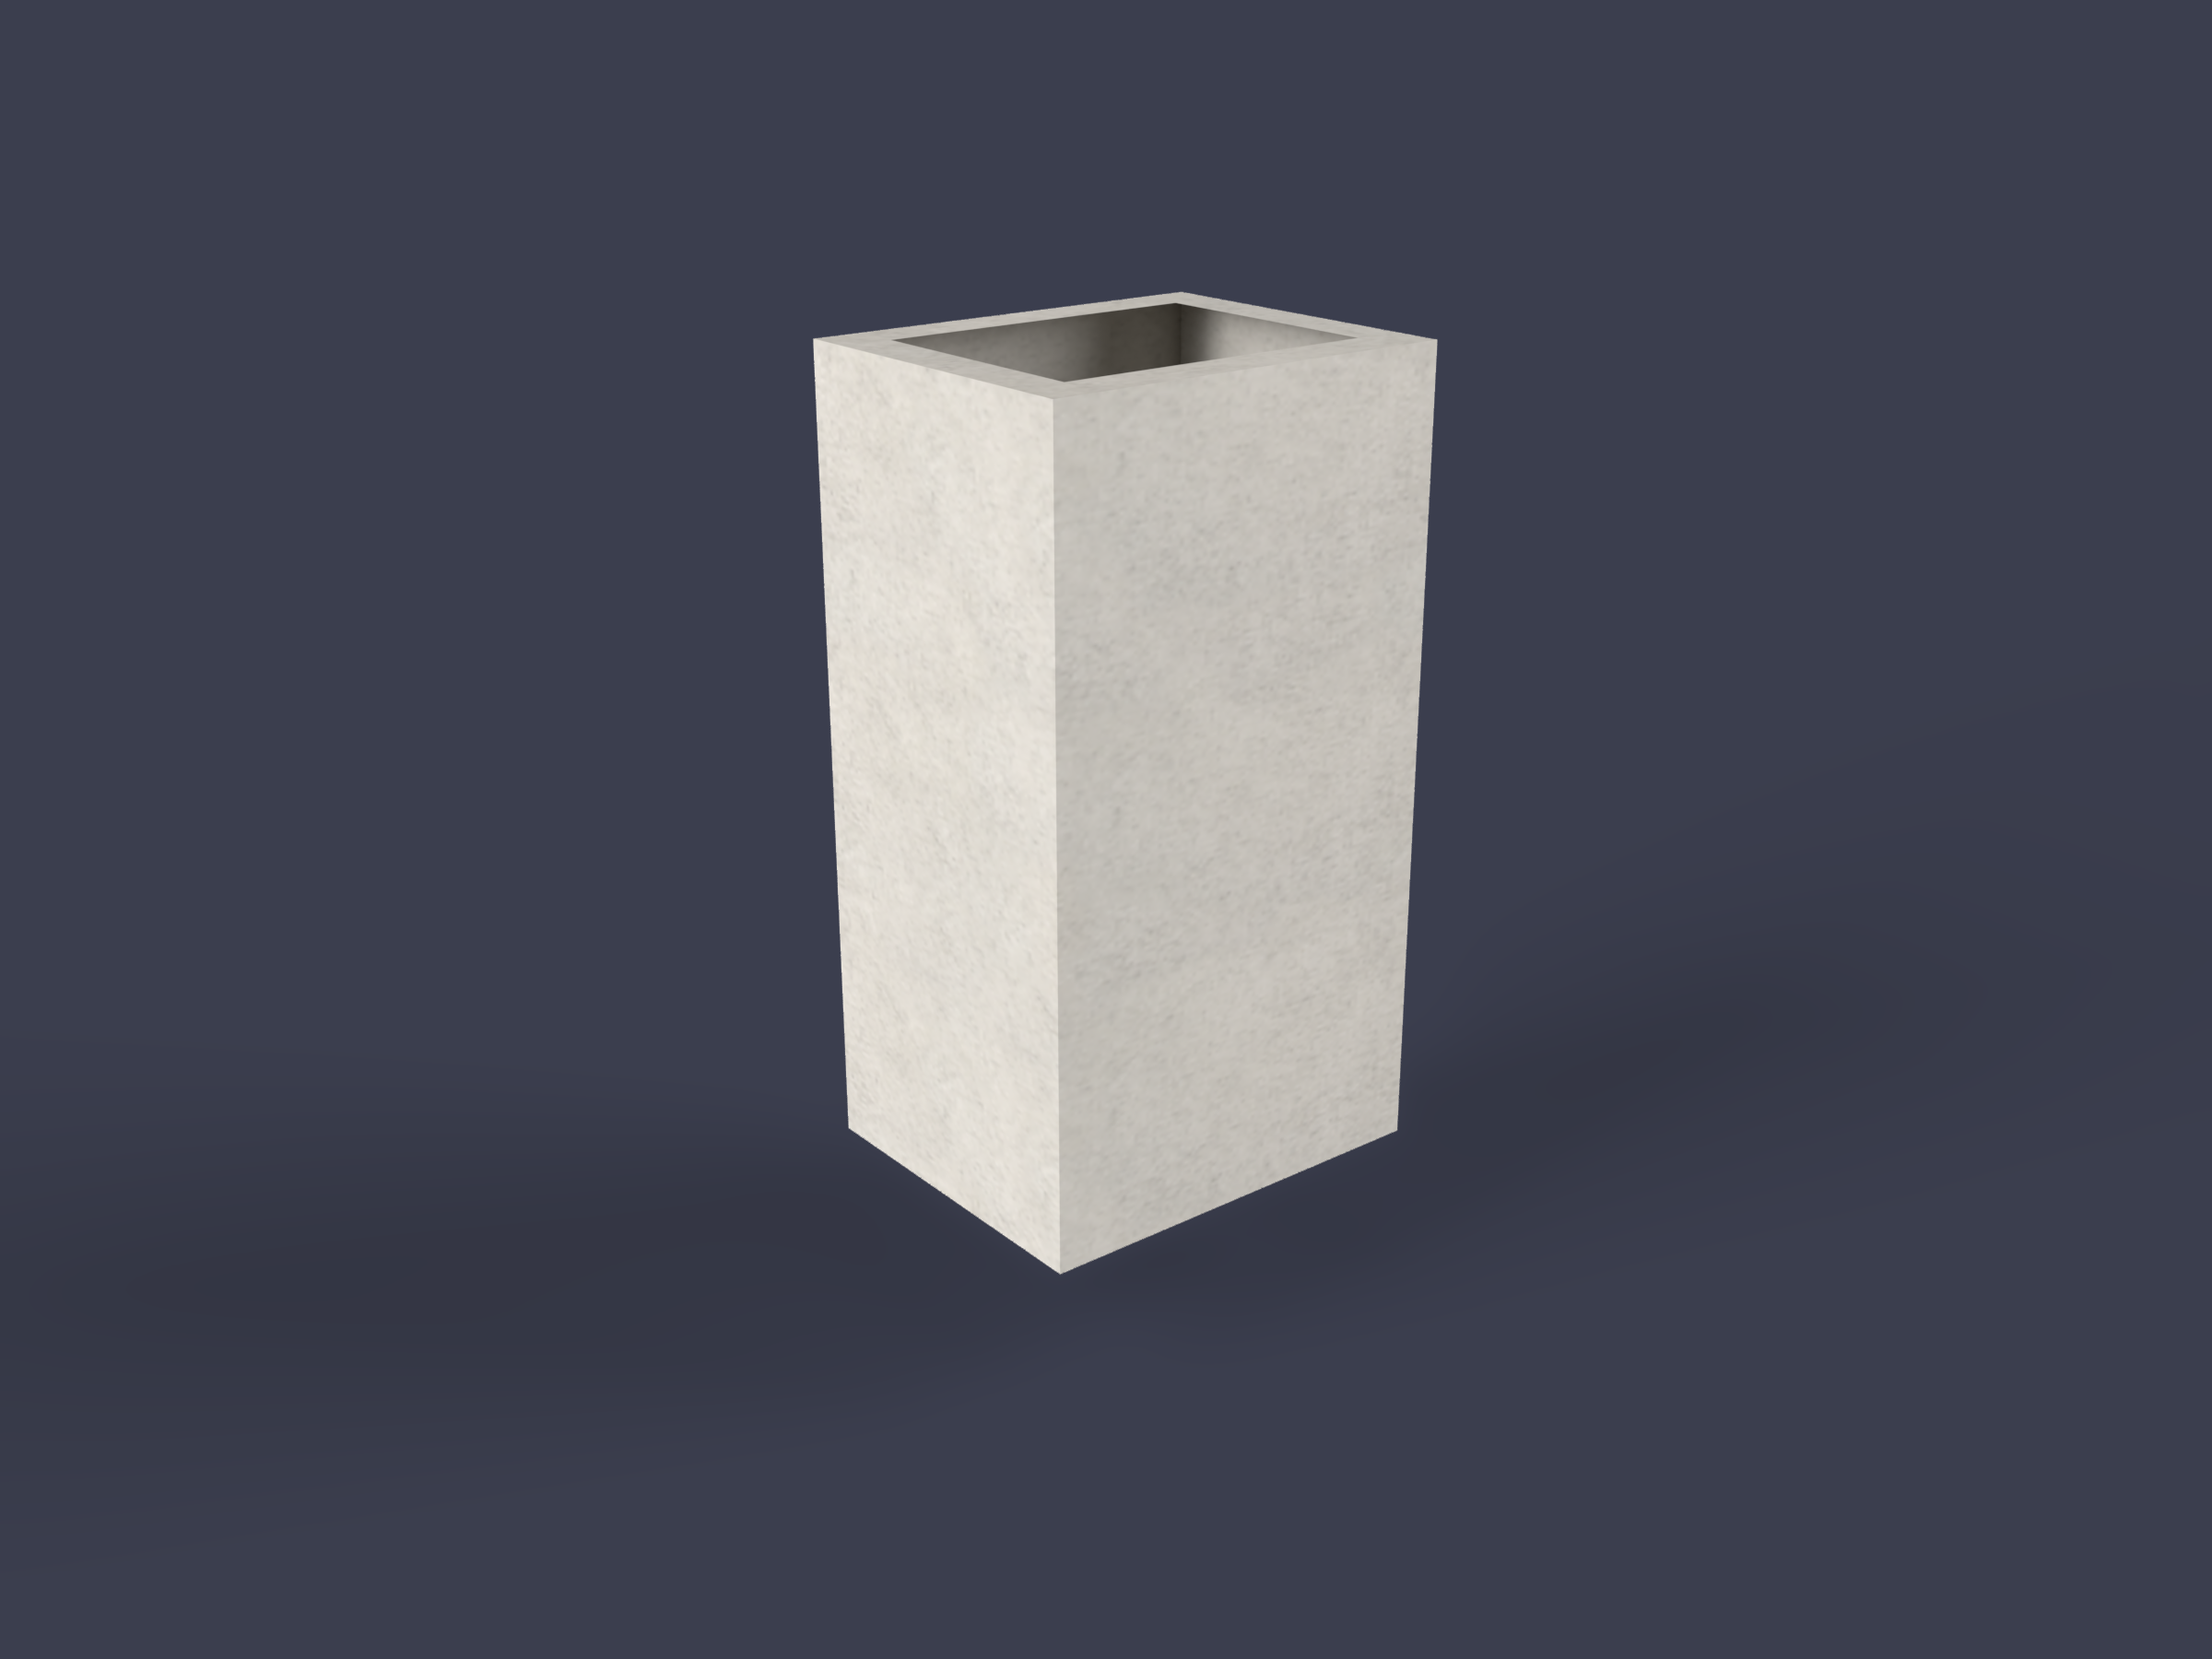 Square concrete chimney for fireplace